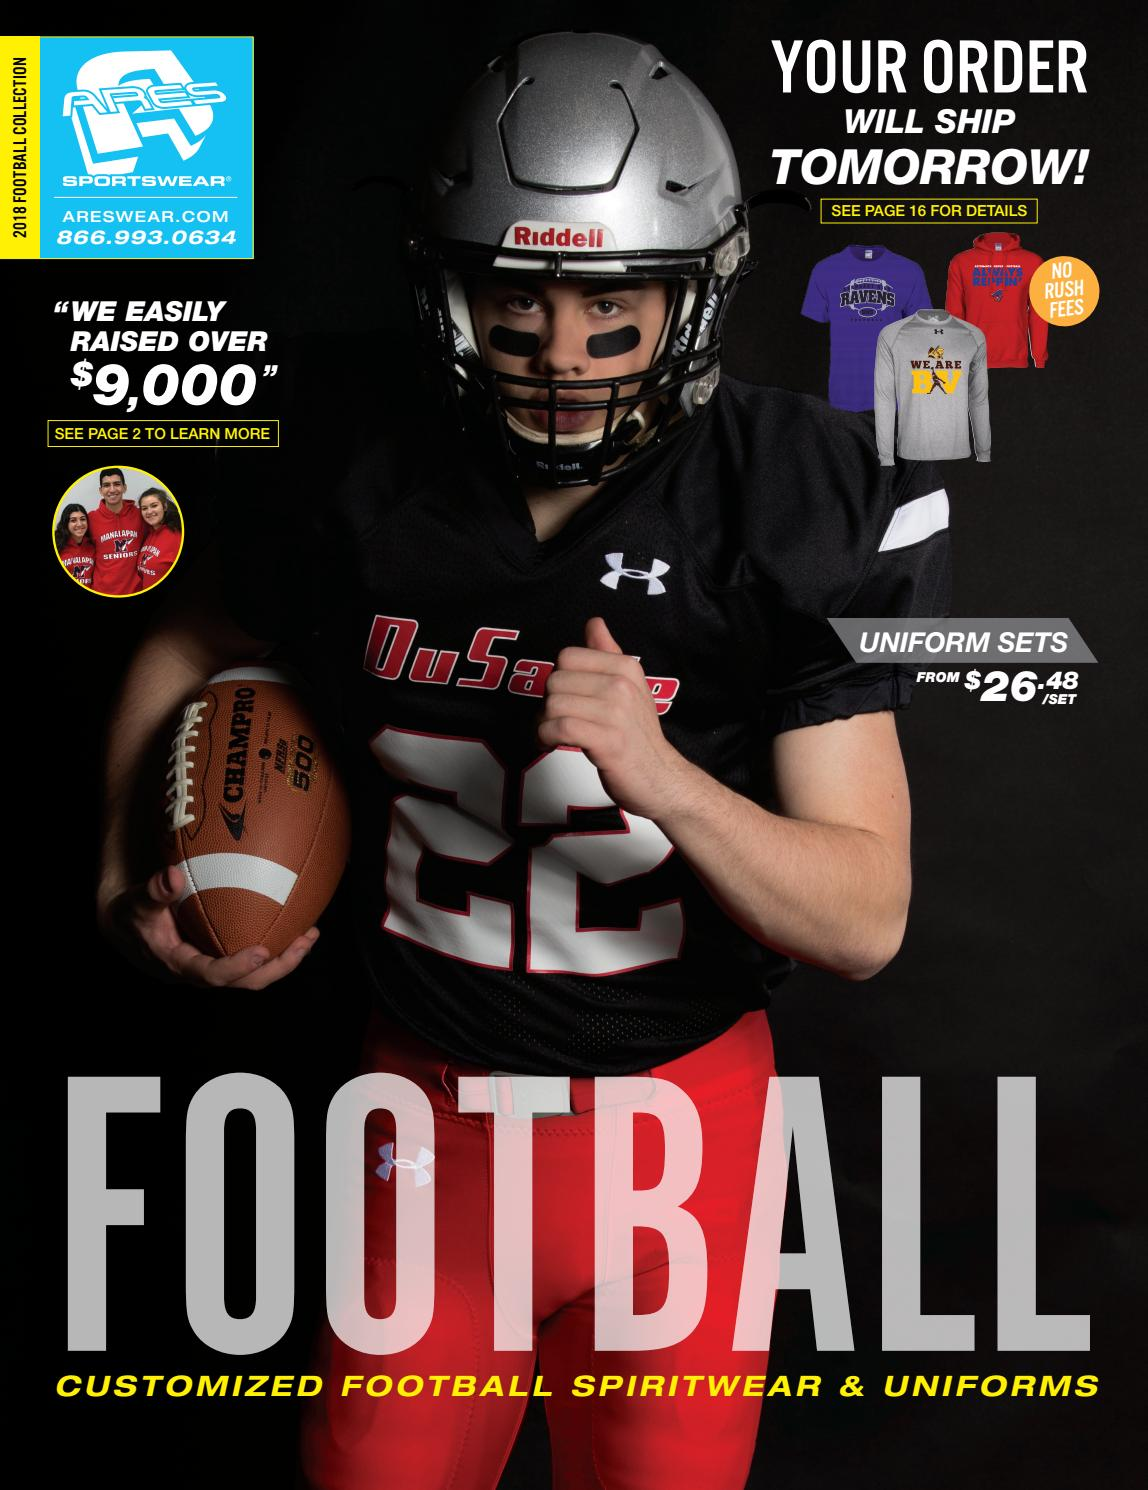 2018 Ares Sportswear Football Catalog by Ares Sportswear - issuu 4d94061e4